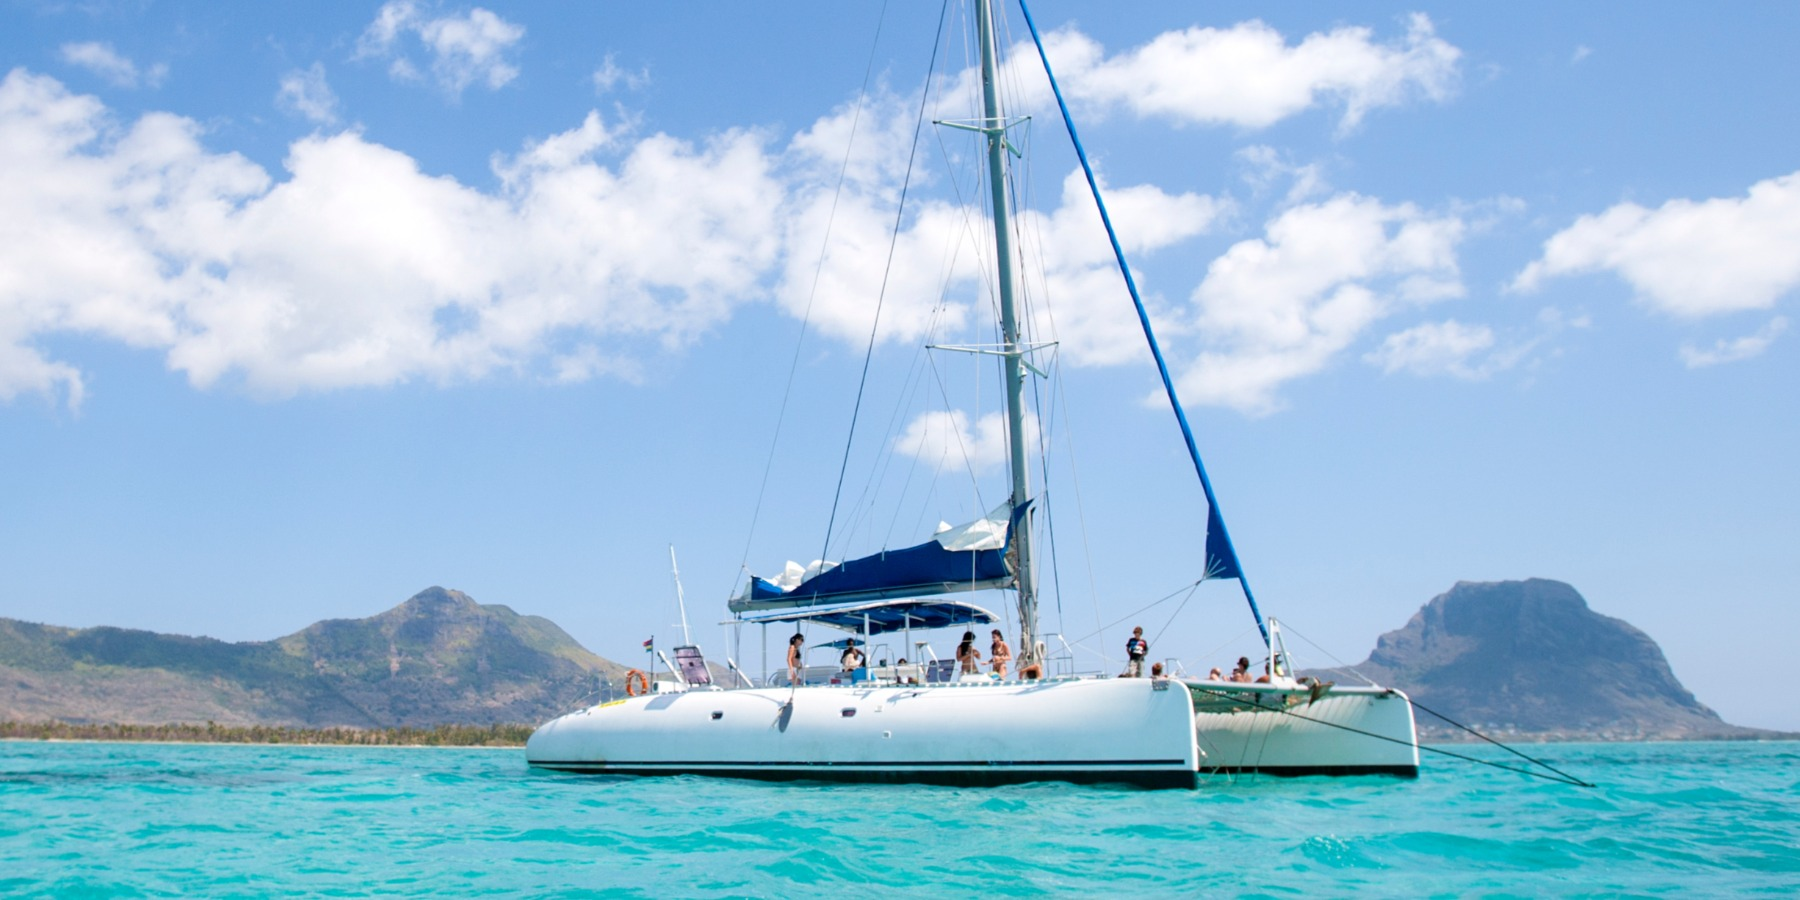 Catamaran Cruise West Coast-Including Lunch & Beverages